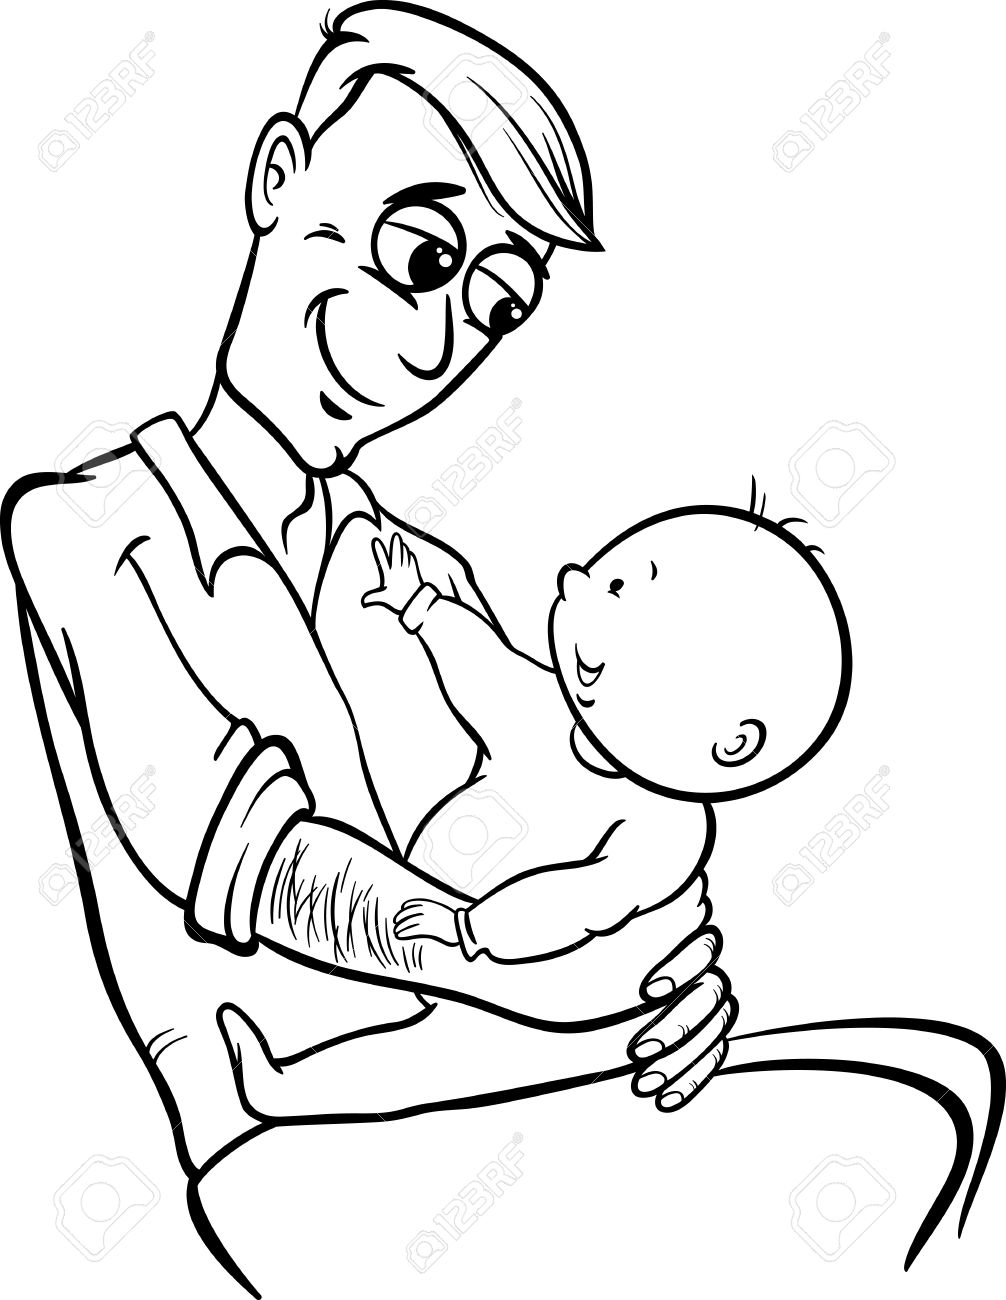 clipart black and white father - Clipground